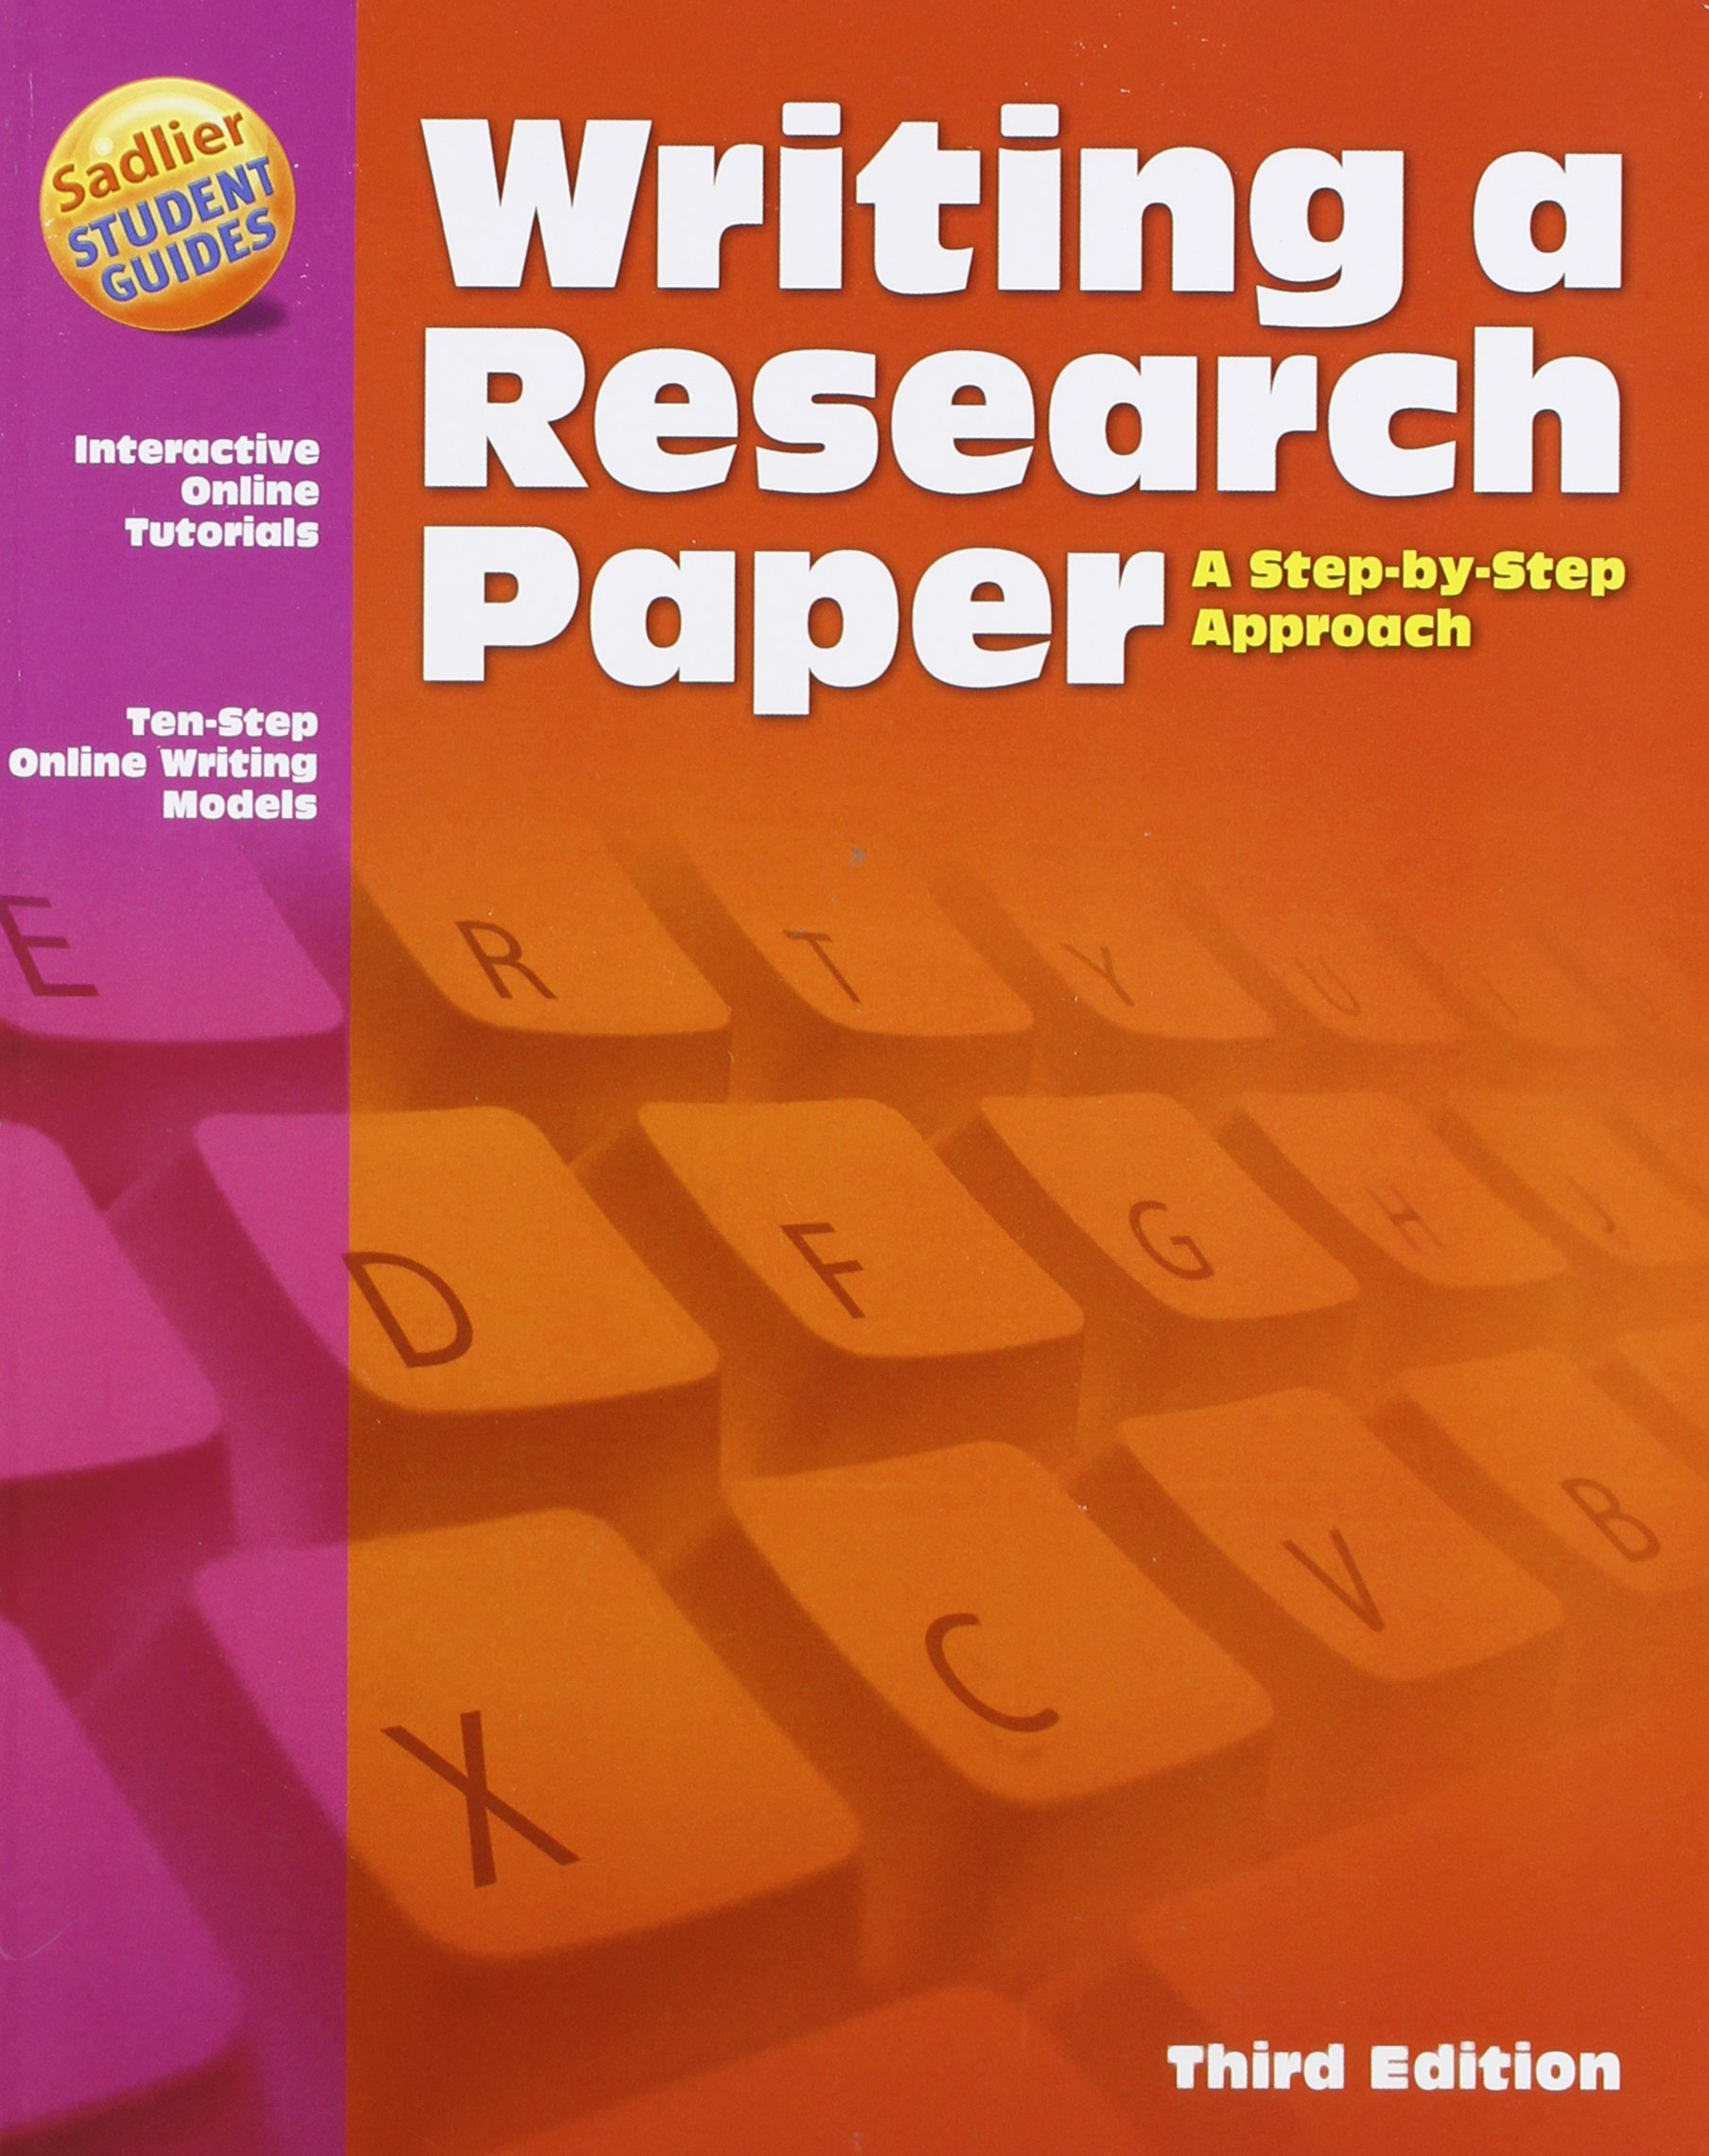 019 Research Paper Writing Papers Unique A Complete Guide 15th Edition Ebook 16th Pdf Free Full